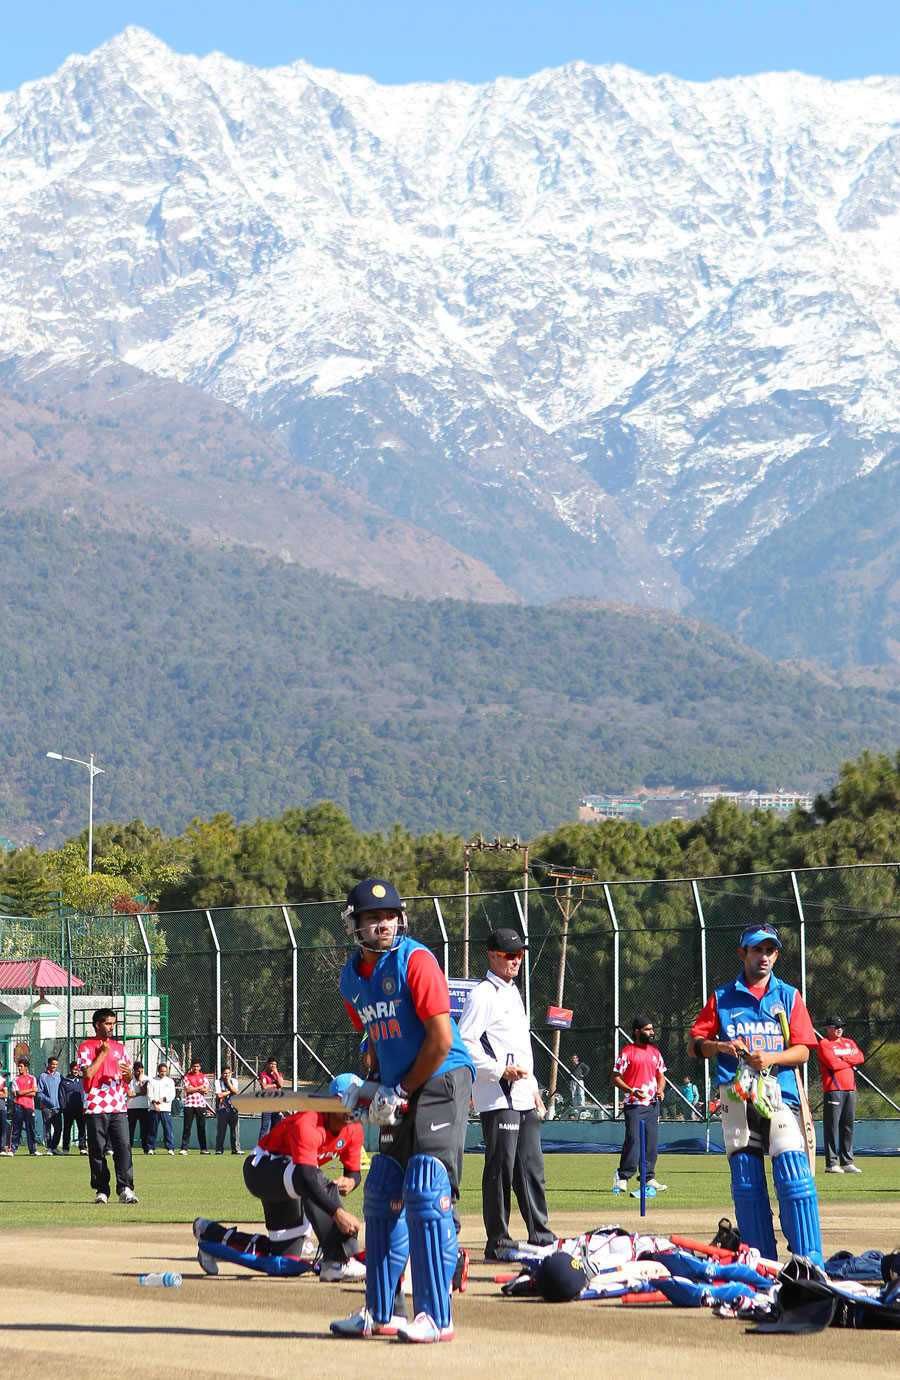 Rohit Sharma practises with the Himalayas as a backdrop